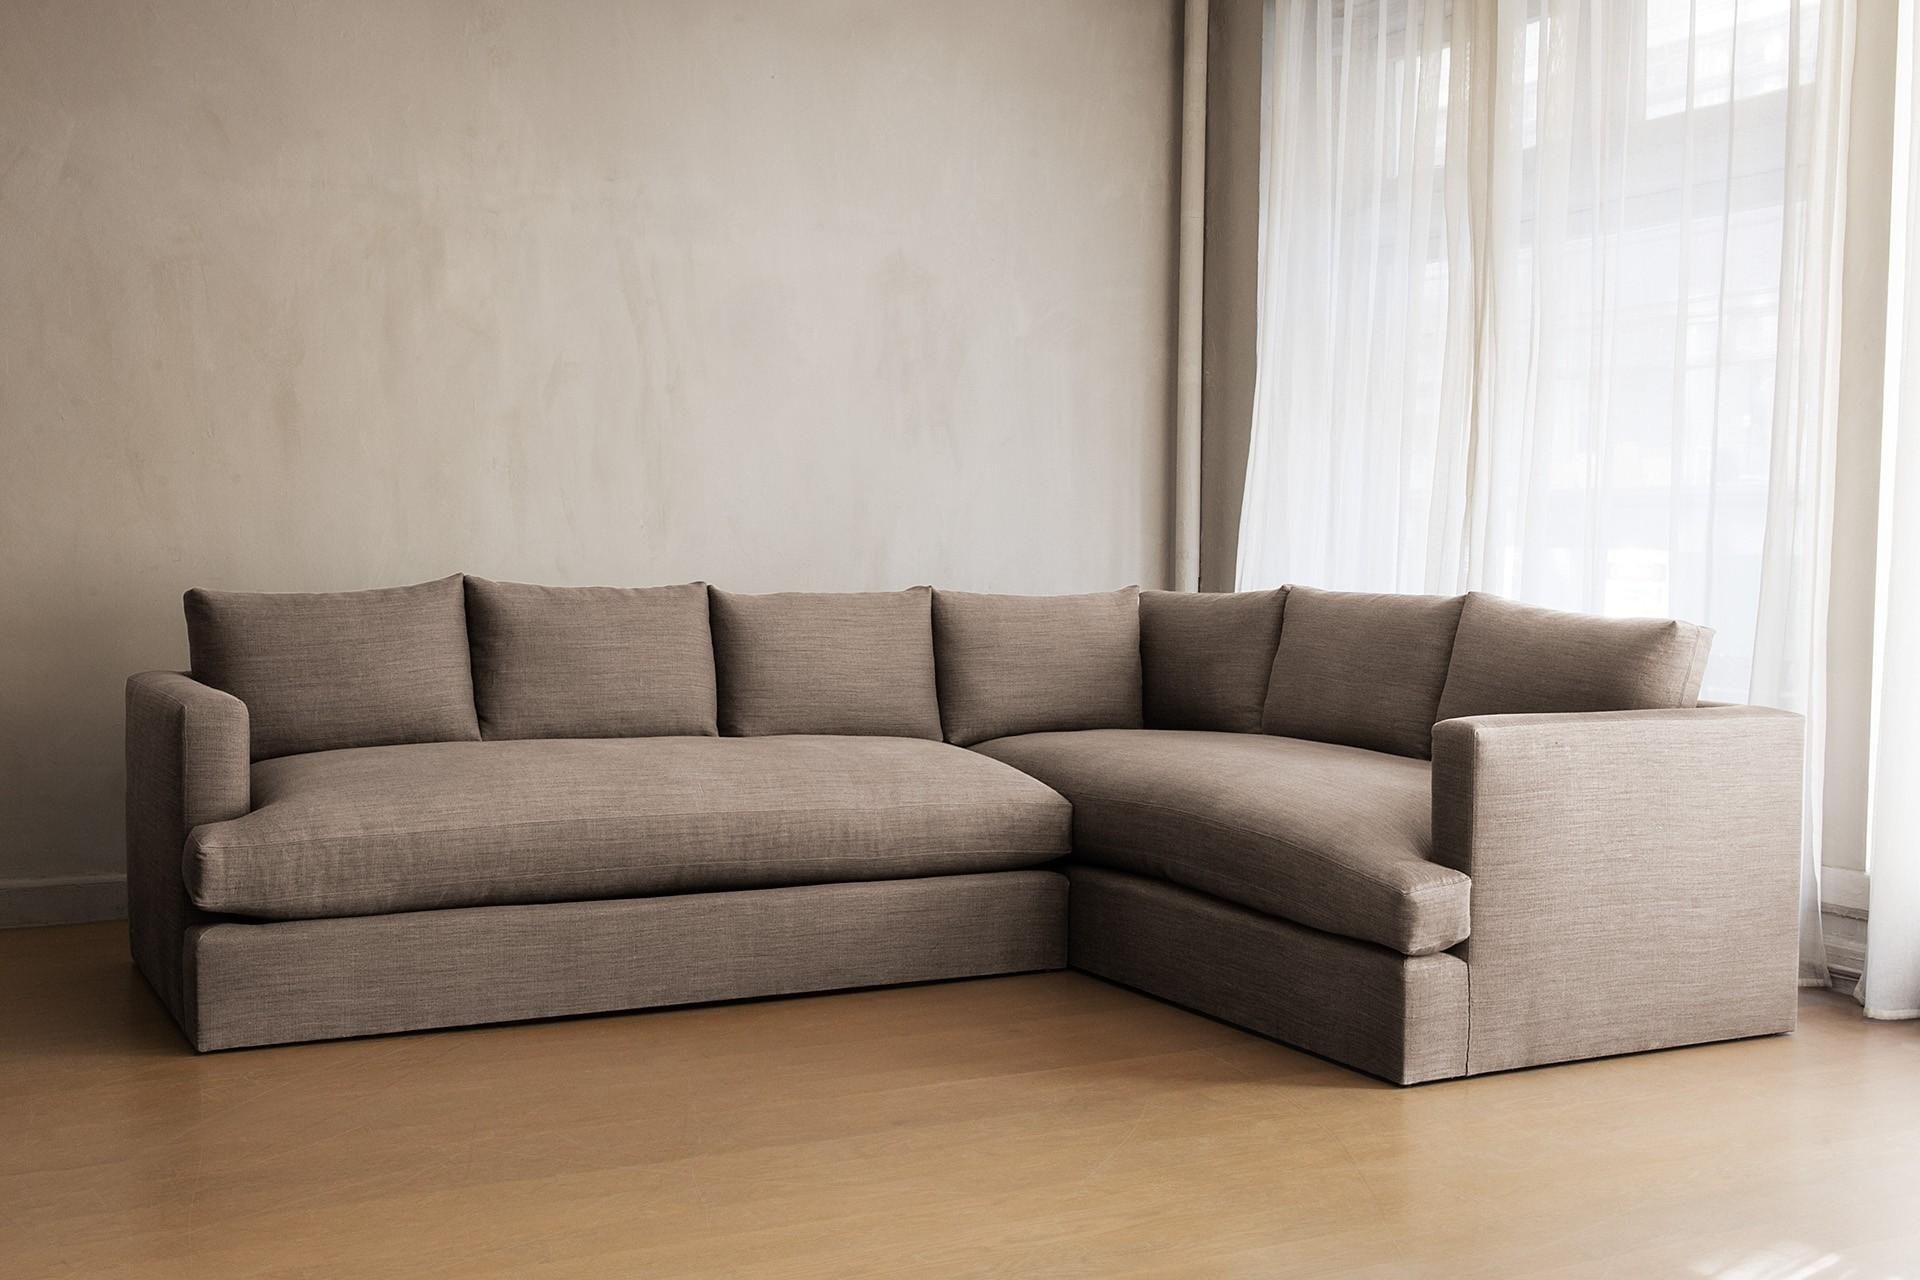 Furniture: Splendid Sectional Couches Ikea With Modern Styles And Regarding Furniture Sectionals Ikea (Image 7 of 15)